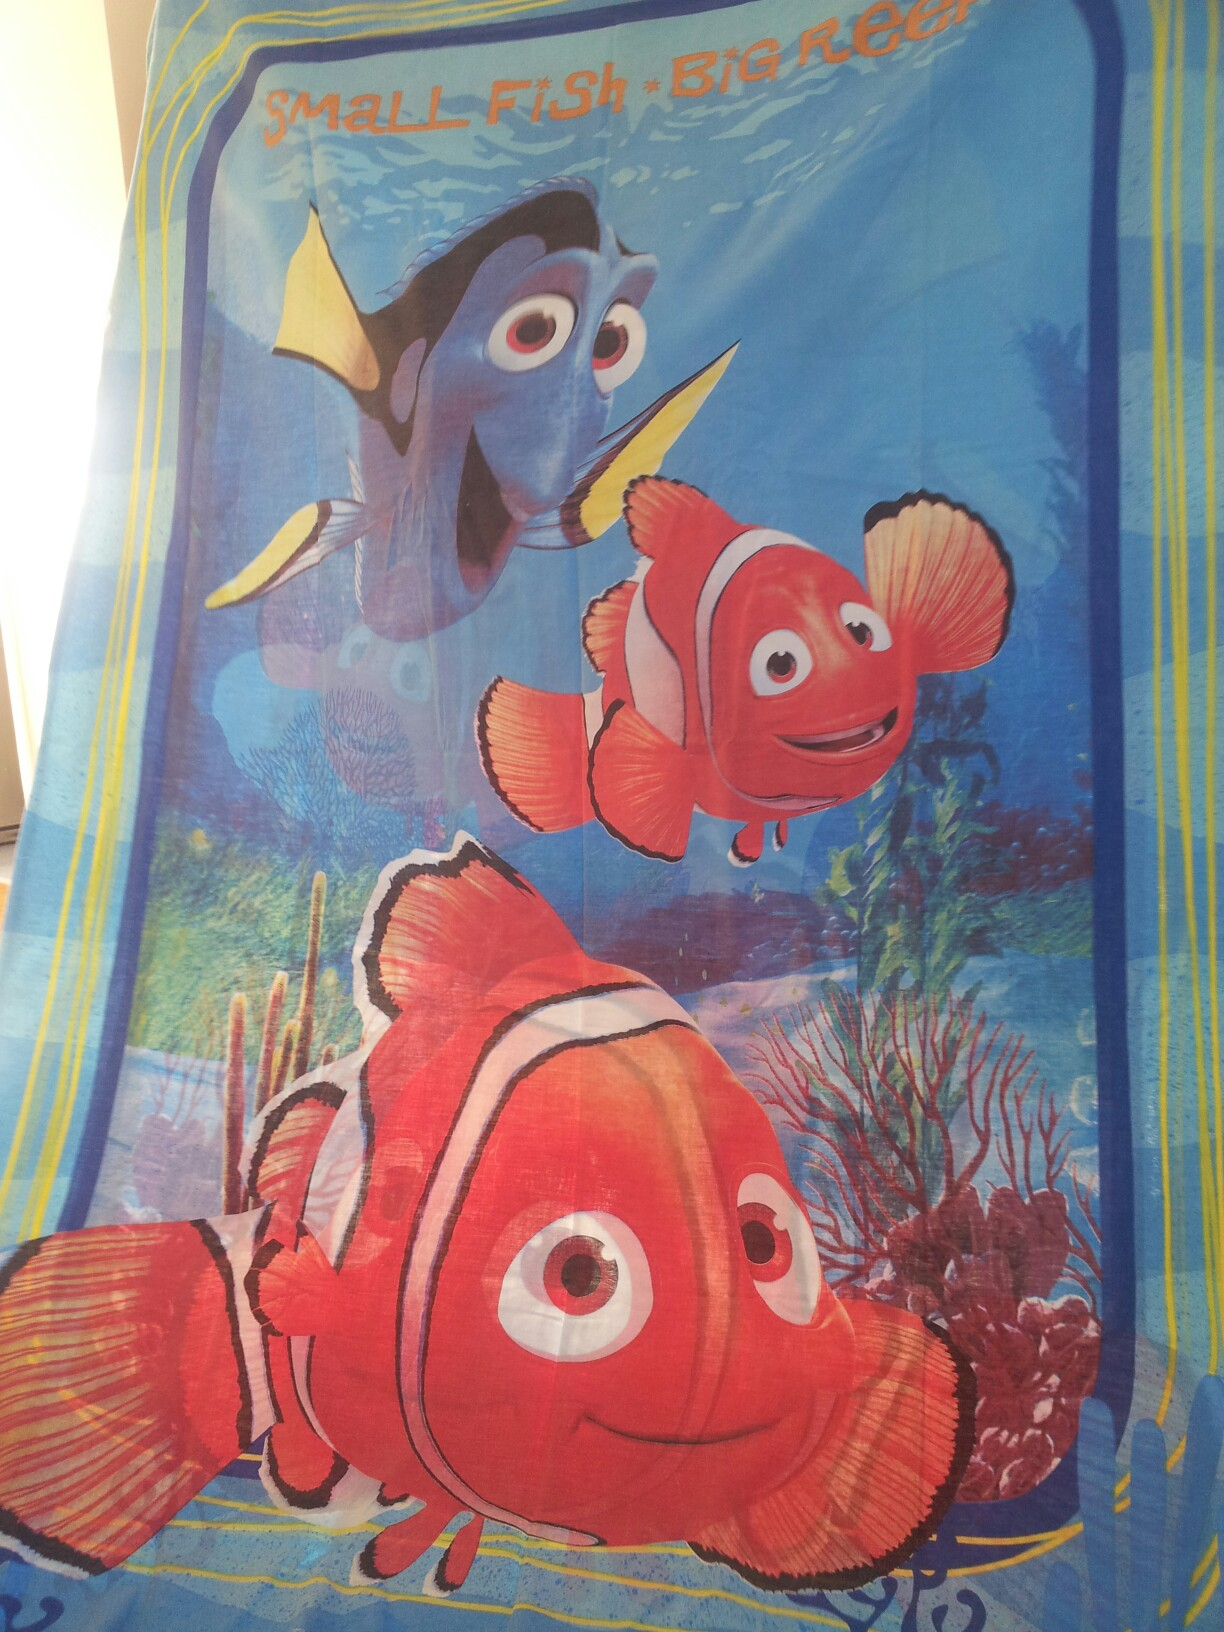 2x SINGLE FINDING NEMO DUVET COVERs DOUBLESIDED AND PILLOW CASES